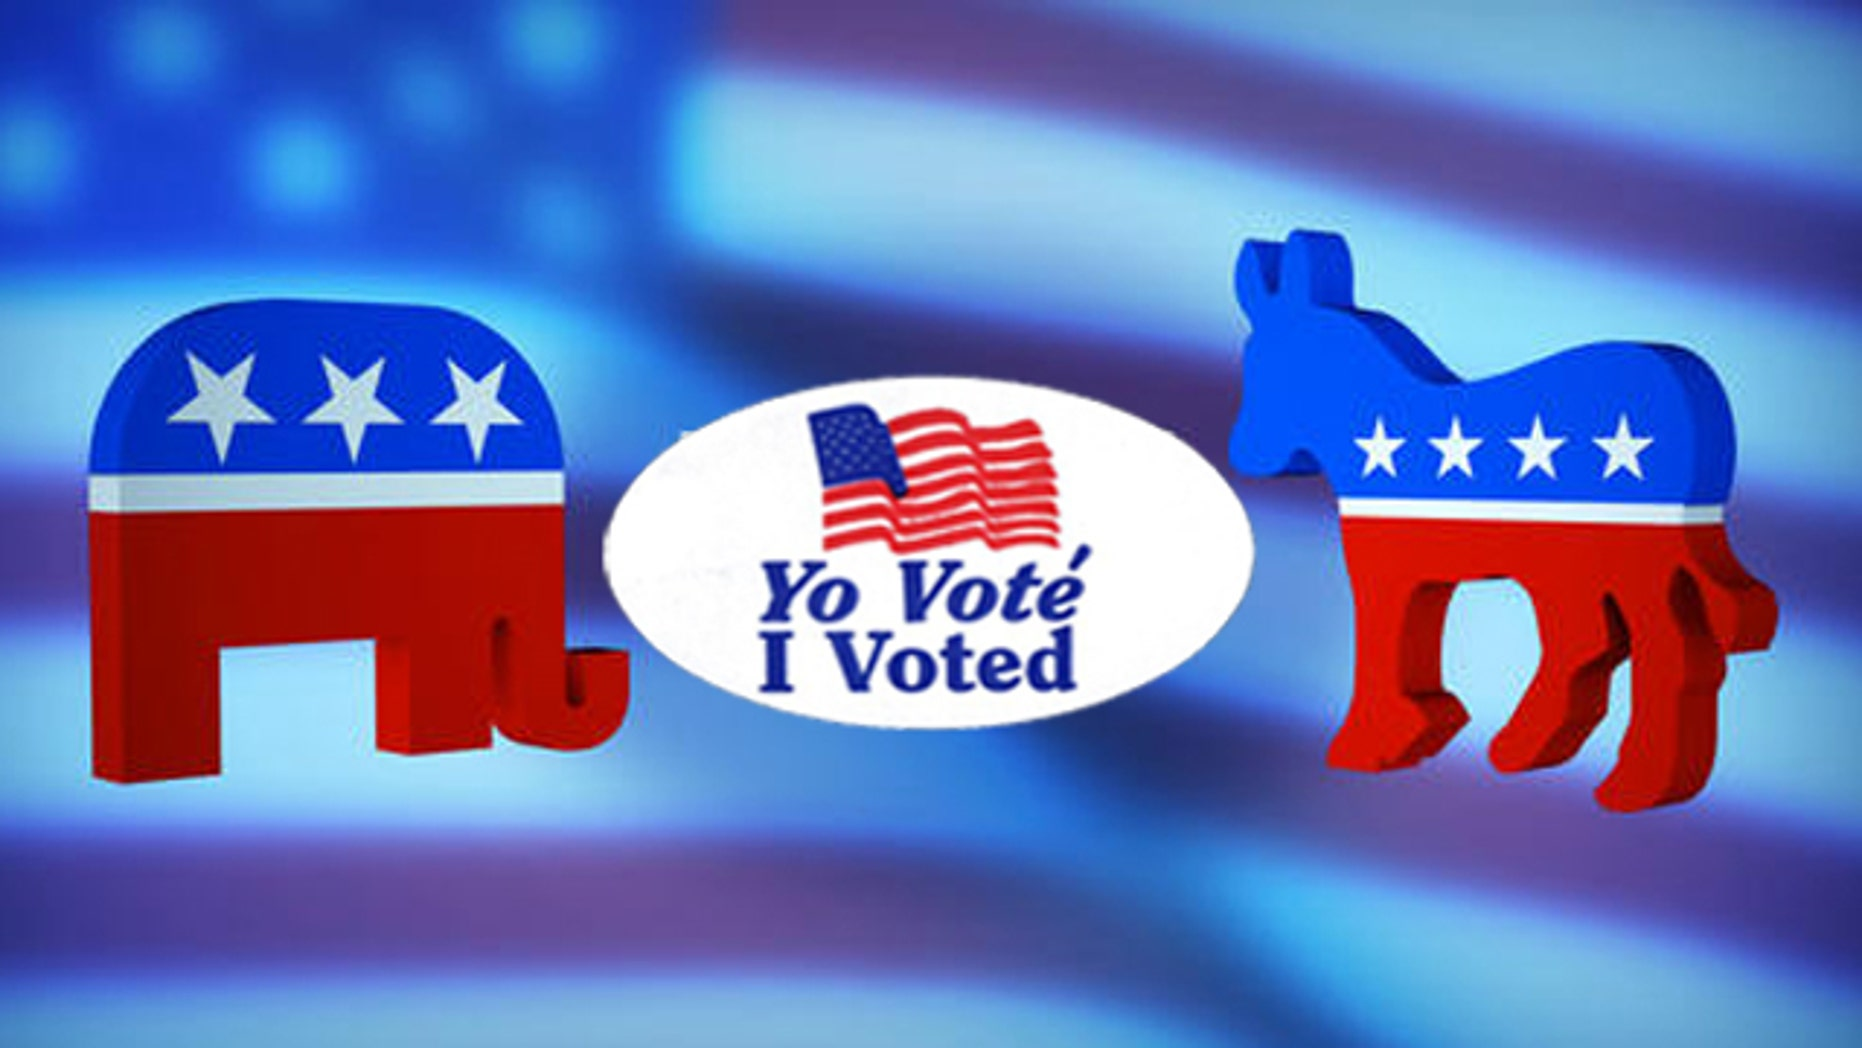 Republicans and Democrats are beginning their courtship of Latinos particularly early for the 2012 elections.